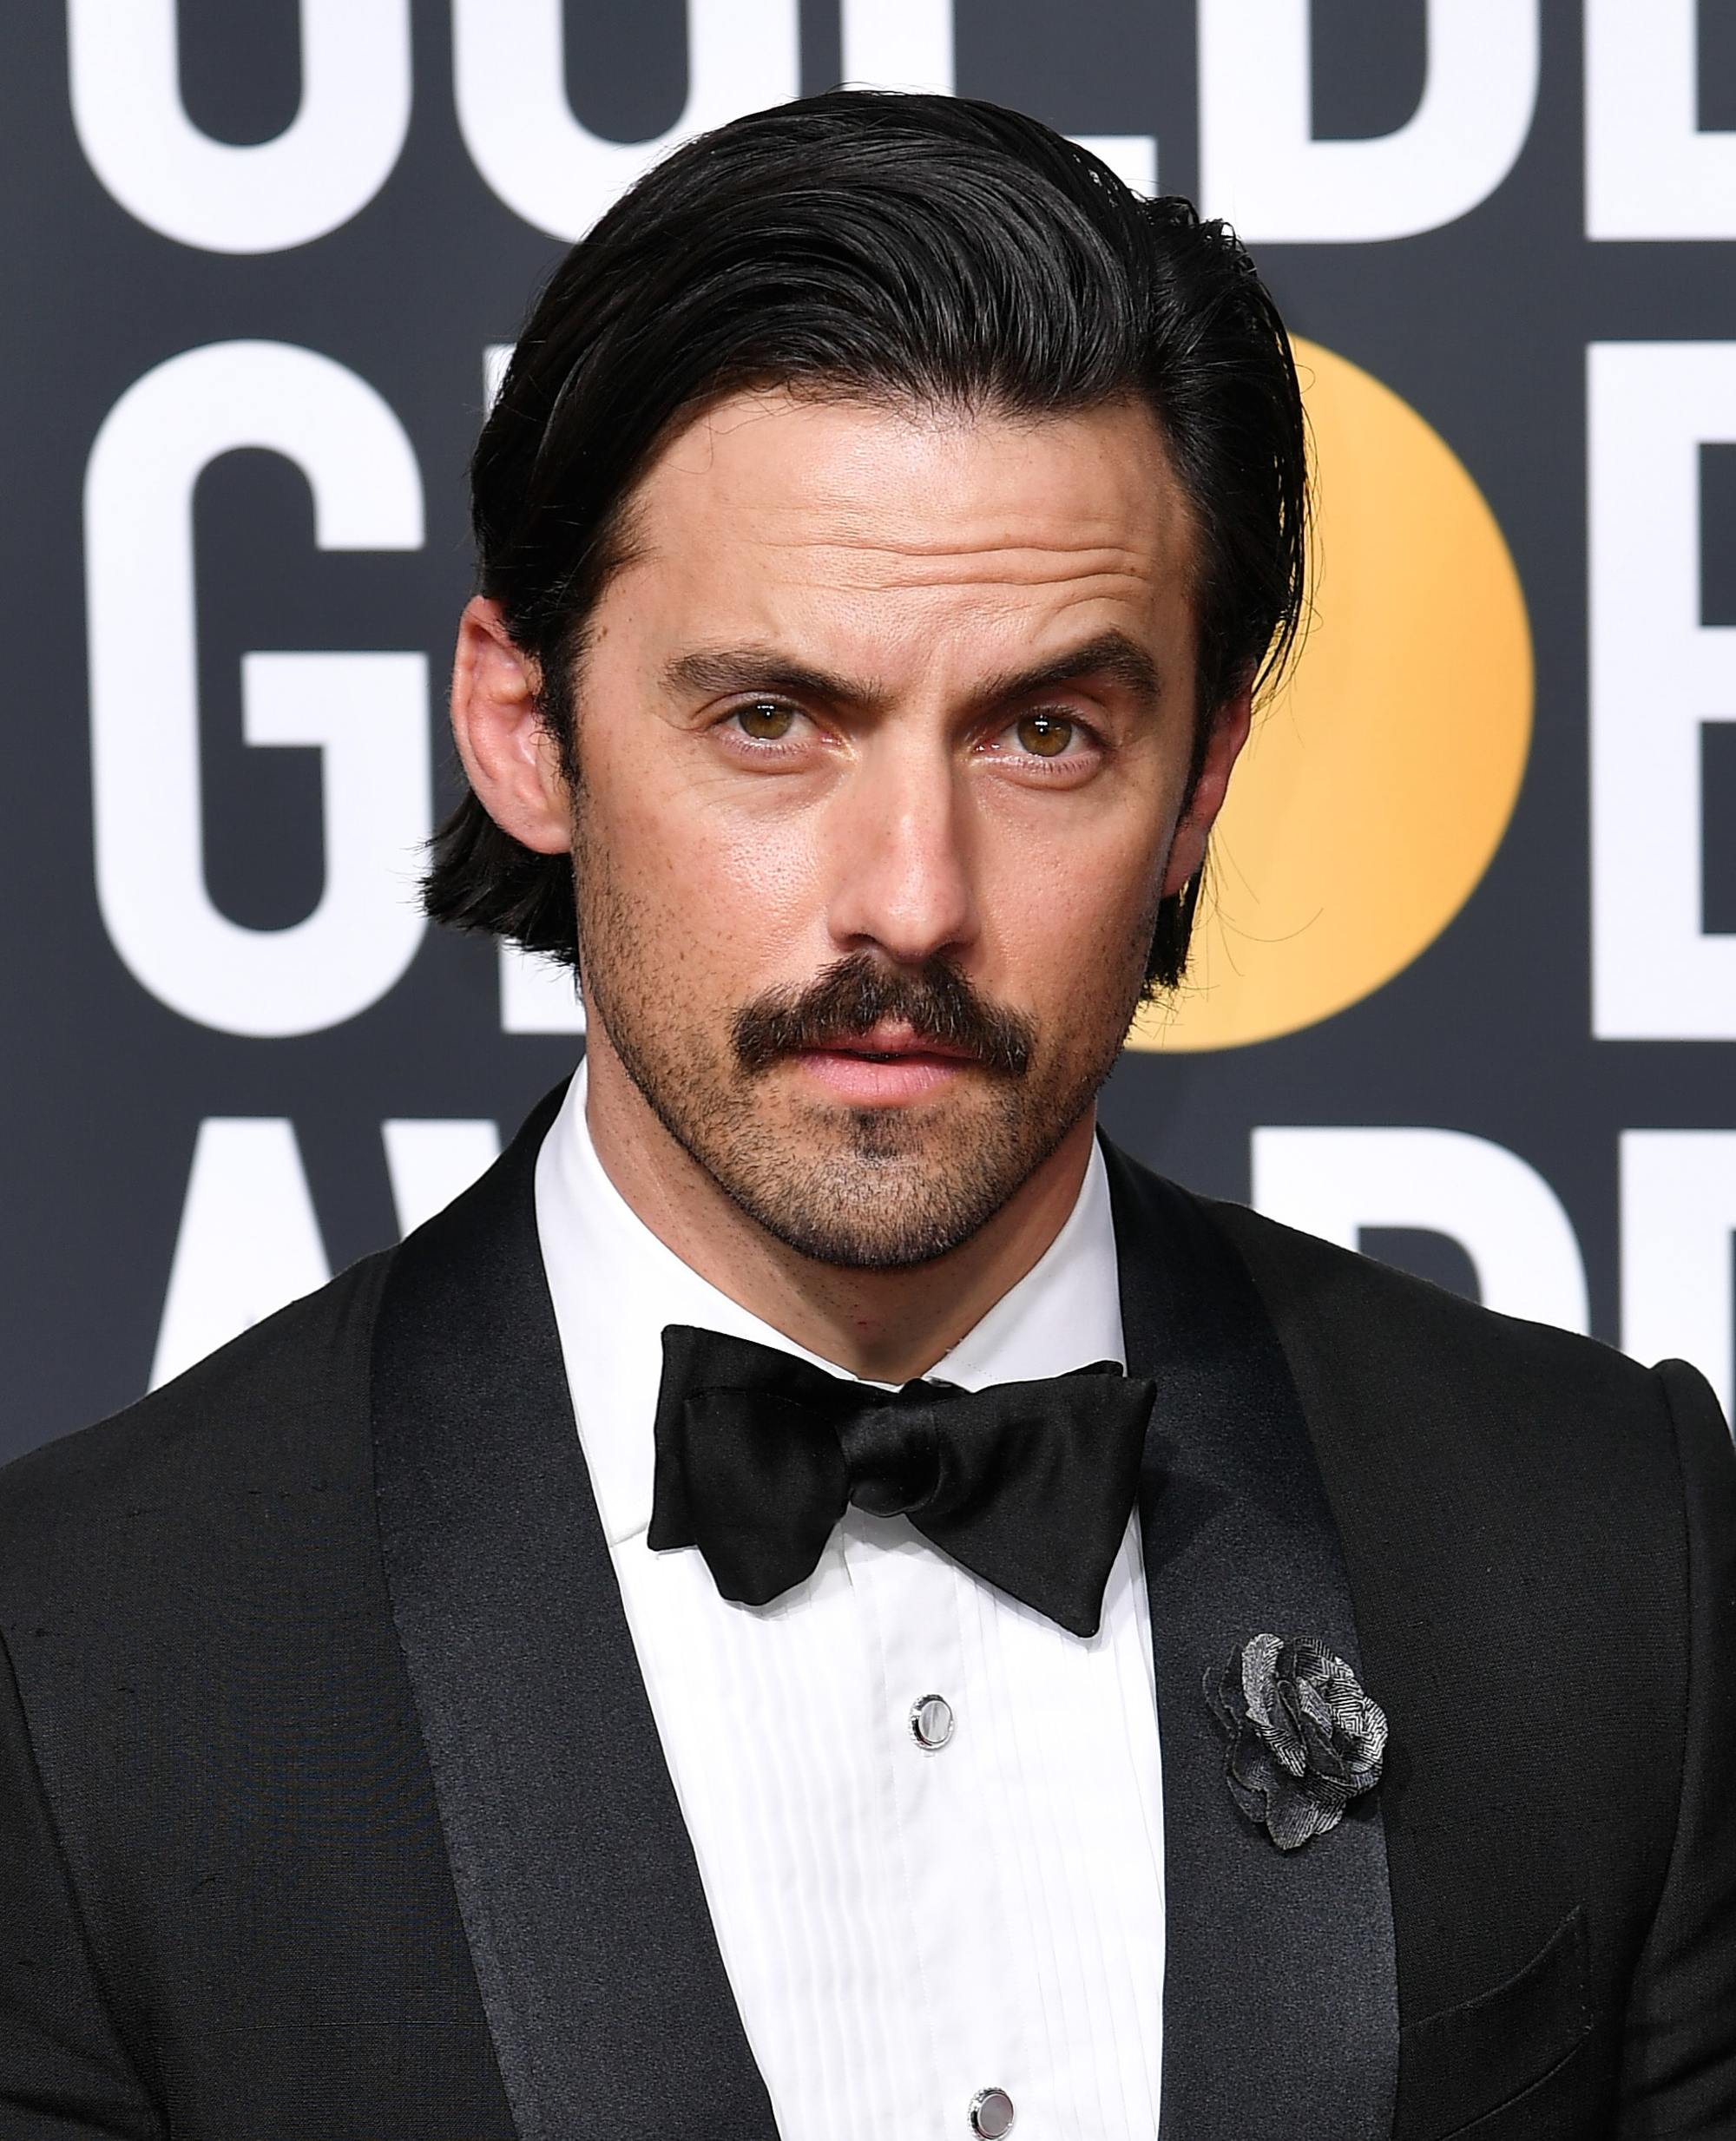 milo ventimiglia medium length dark brown hair in side parted swept back style